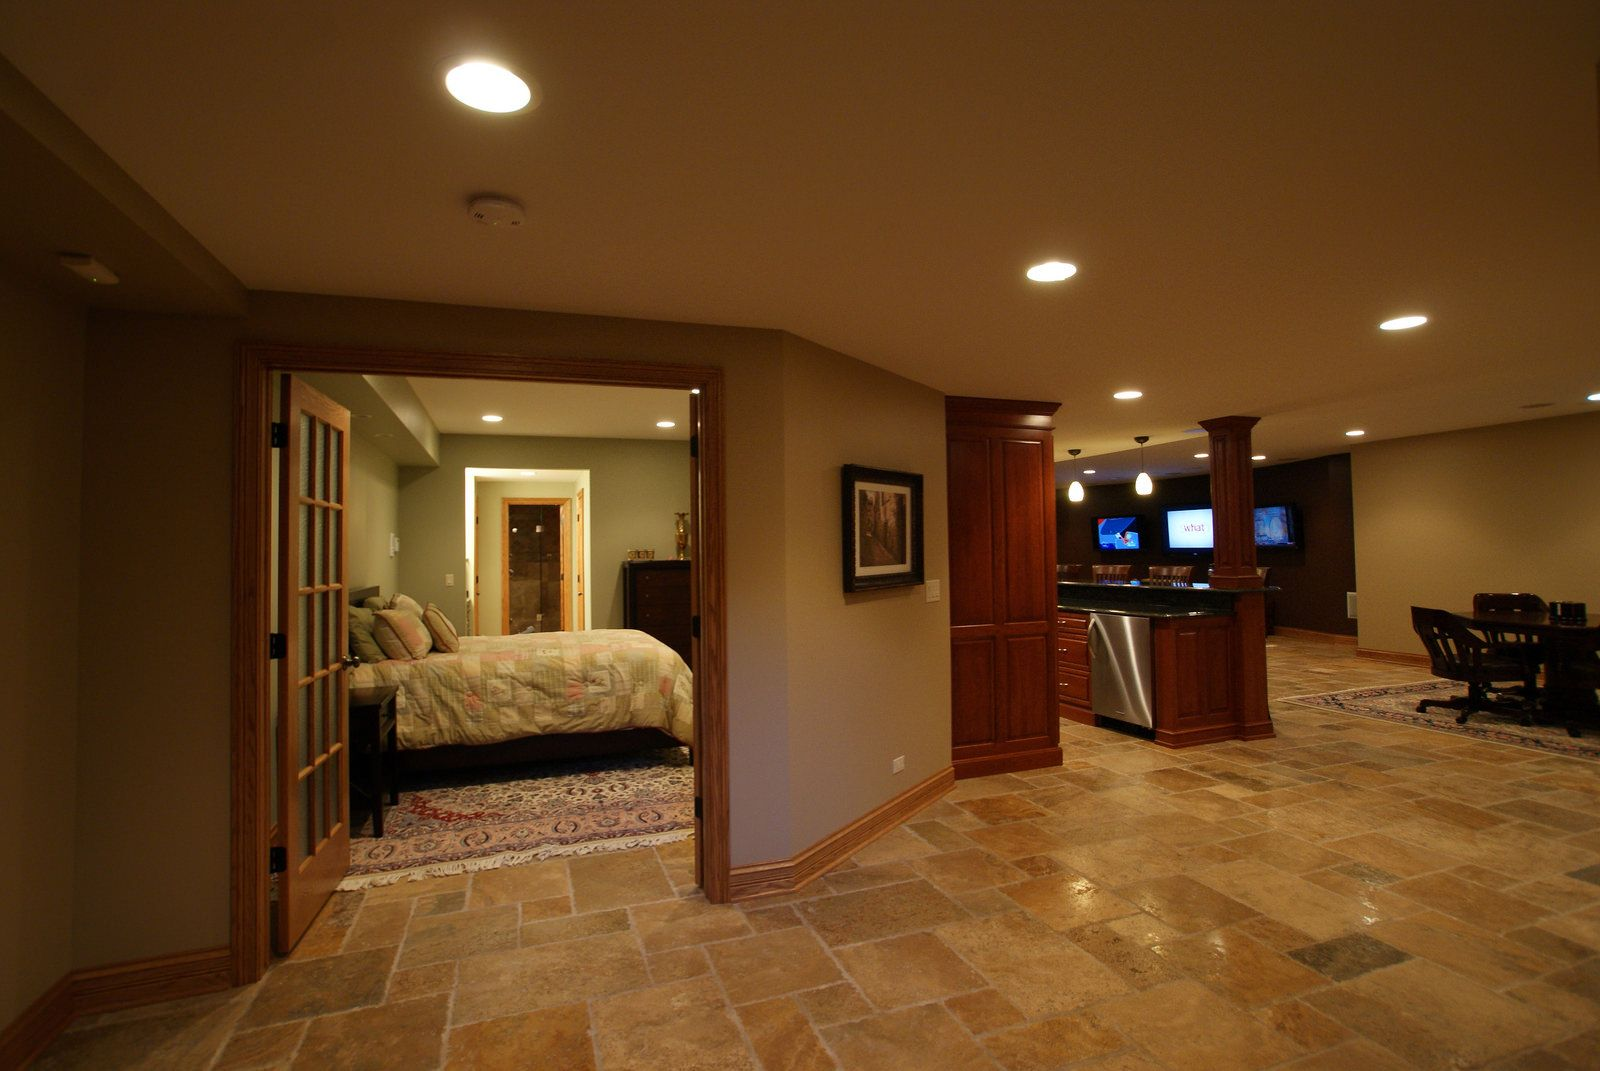 Remodeling Basement Ideas New Amazing Marietta Basement Remodels Room Additions Georgia Also Inspiration Design